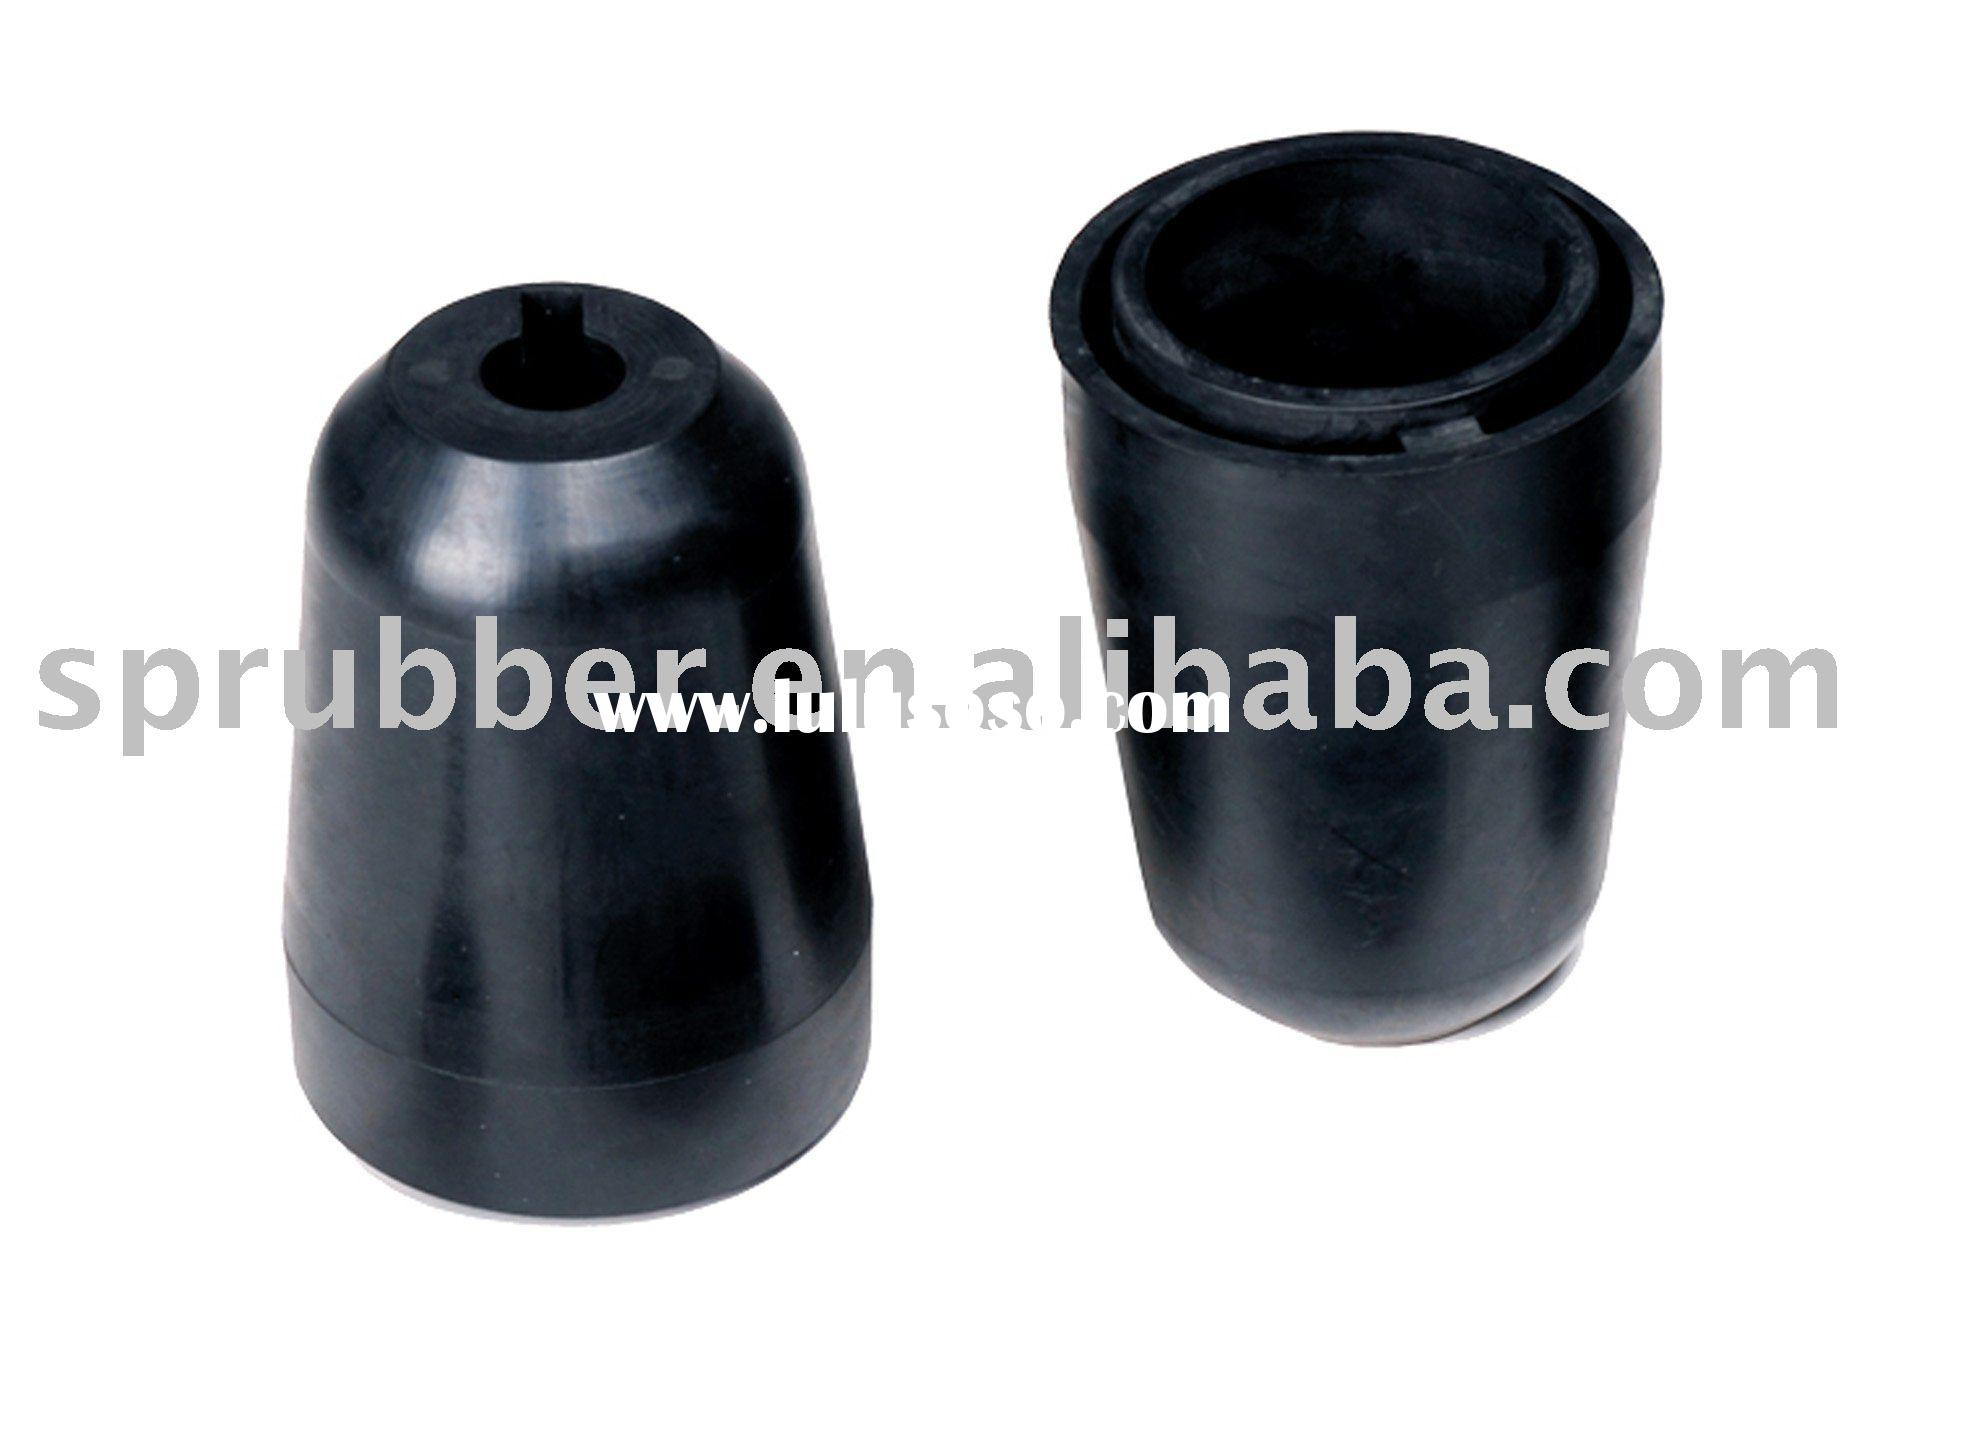 Auto VAMAC rubber parts molded